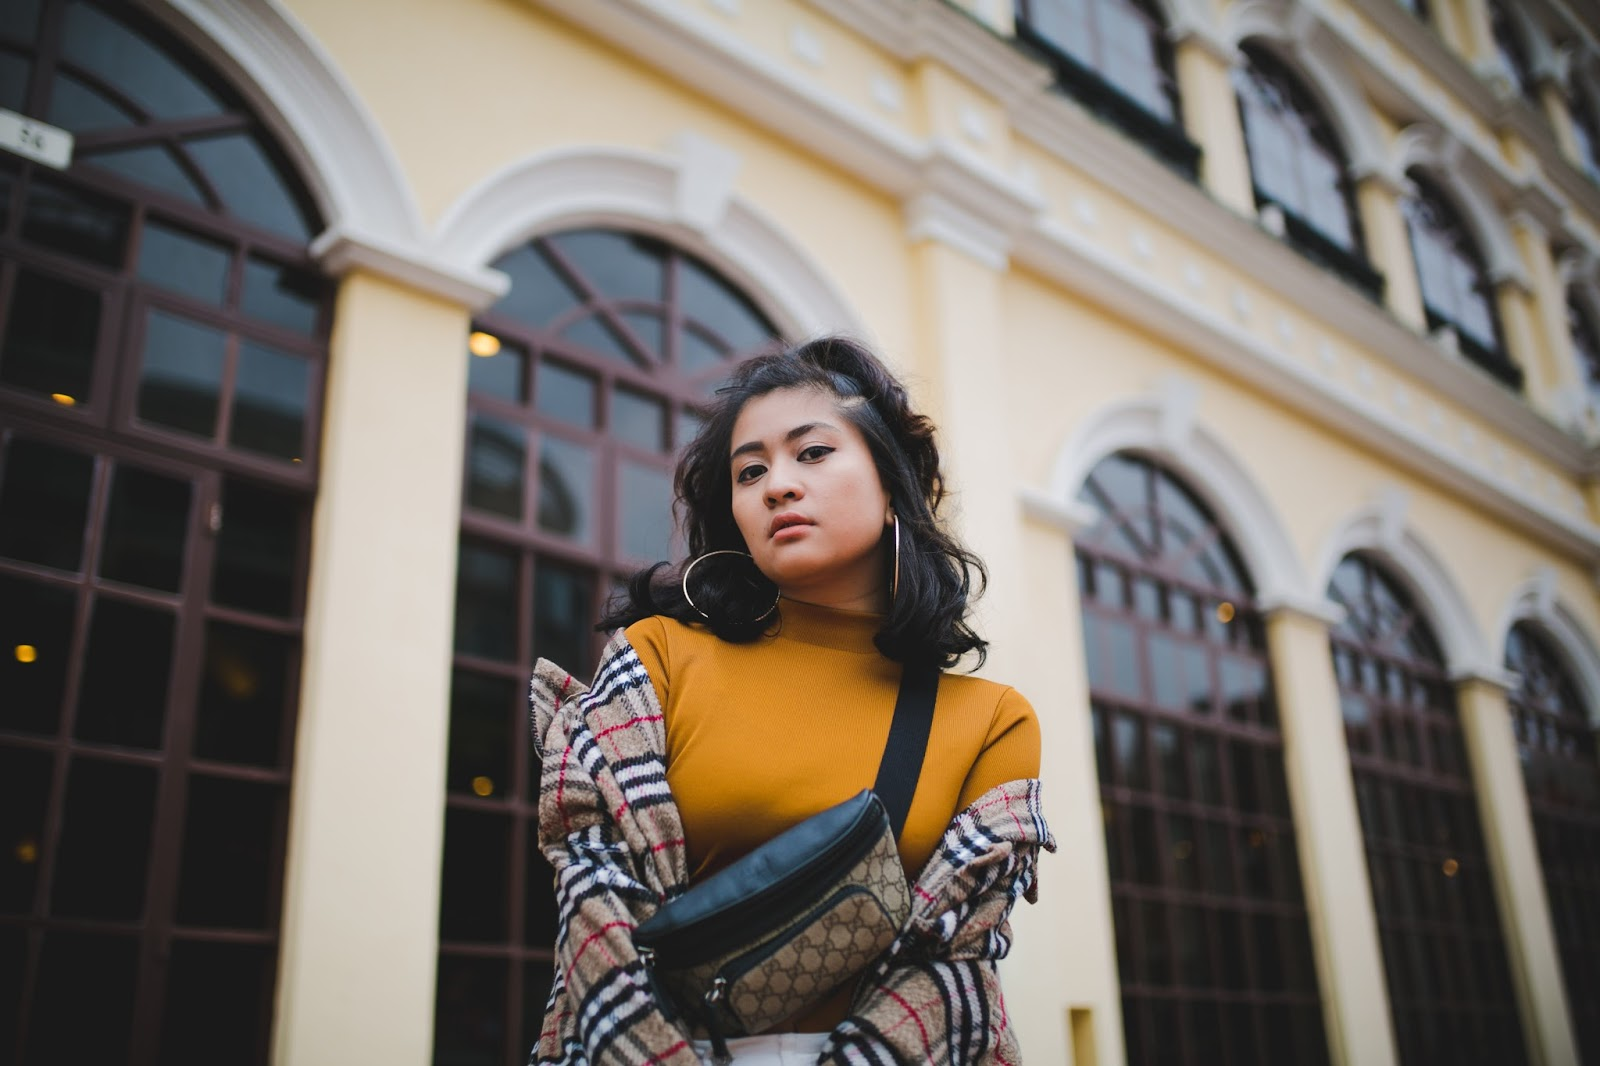 Macau Fashion blogger wearing burberry and gucci